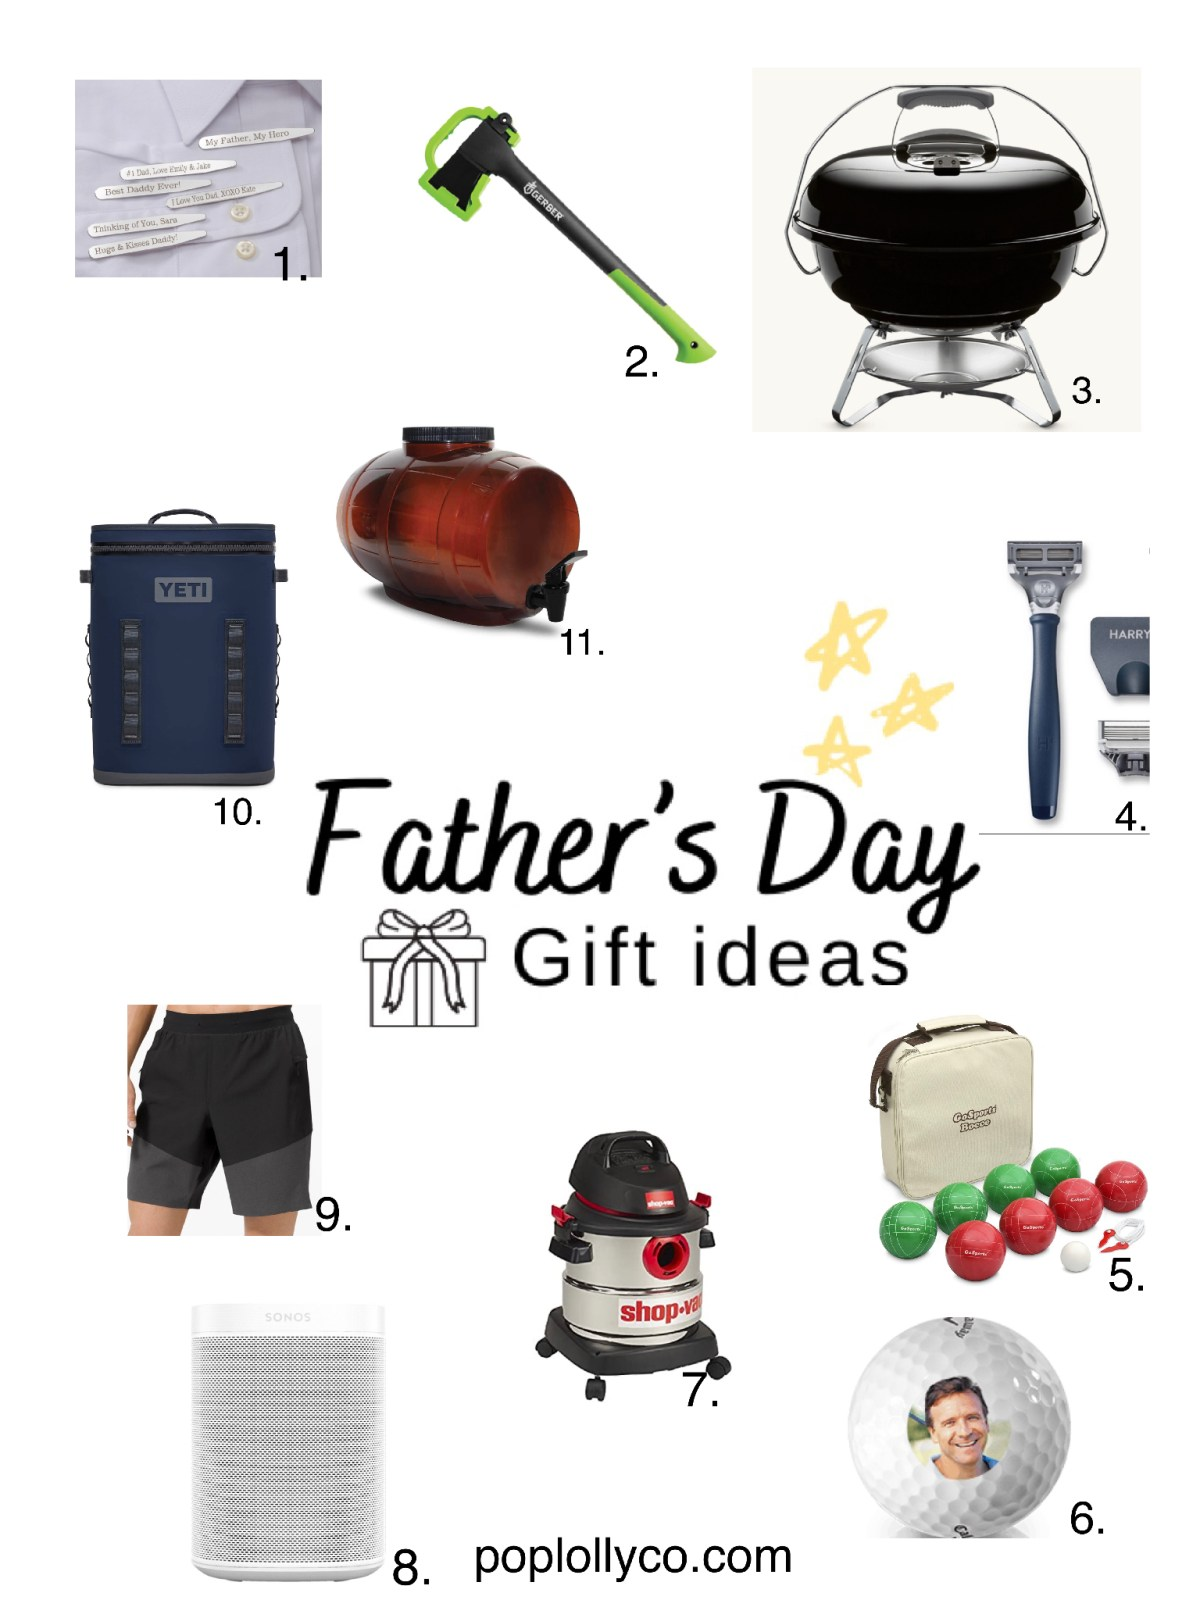 find the best presents for dad this fathers day 2020 with this gift guide | Poplolly co